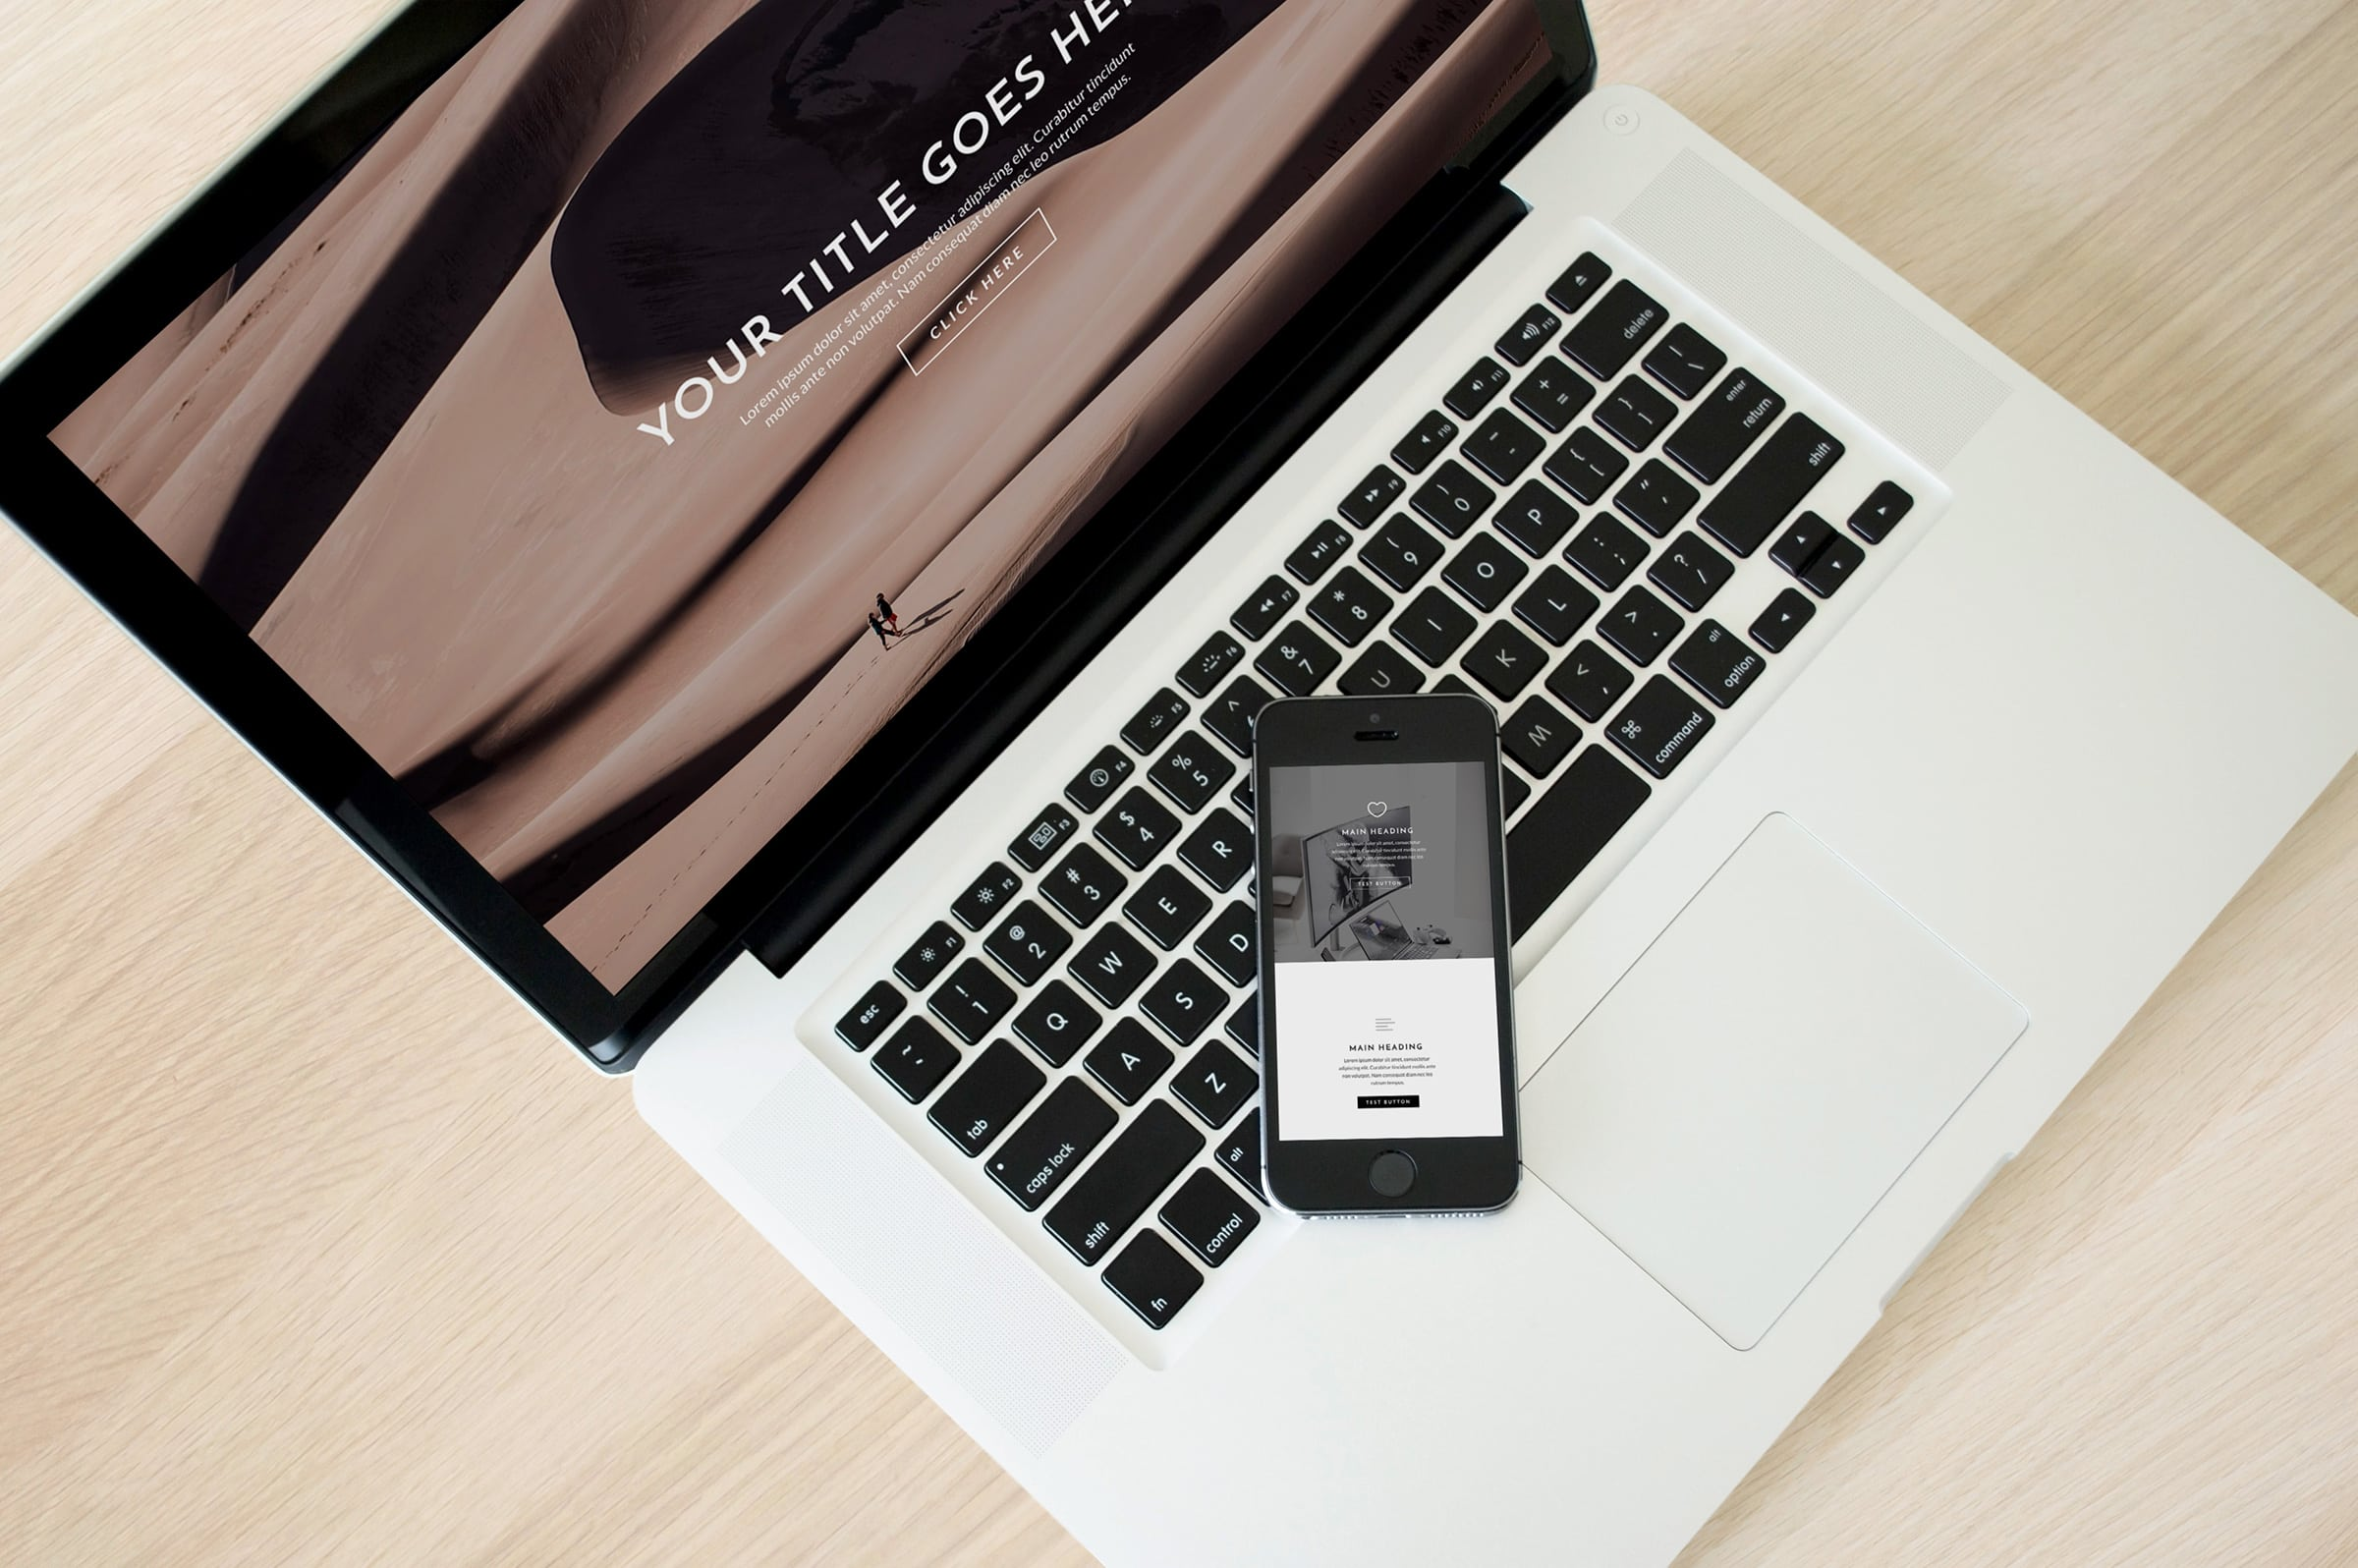 Laptop and cell phone showcasing responsive website design